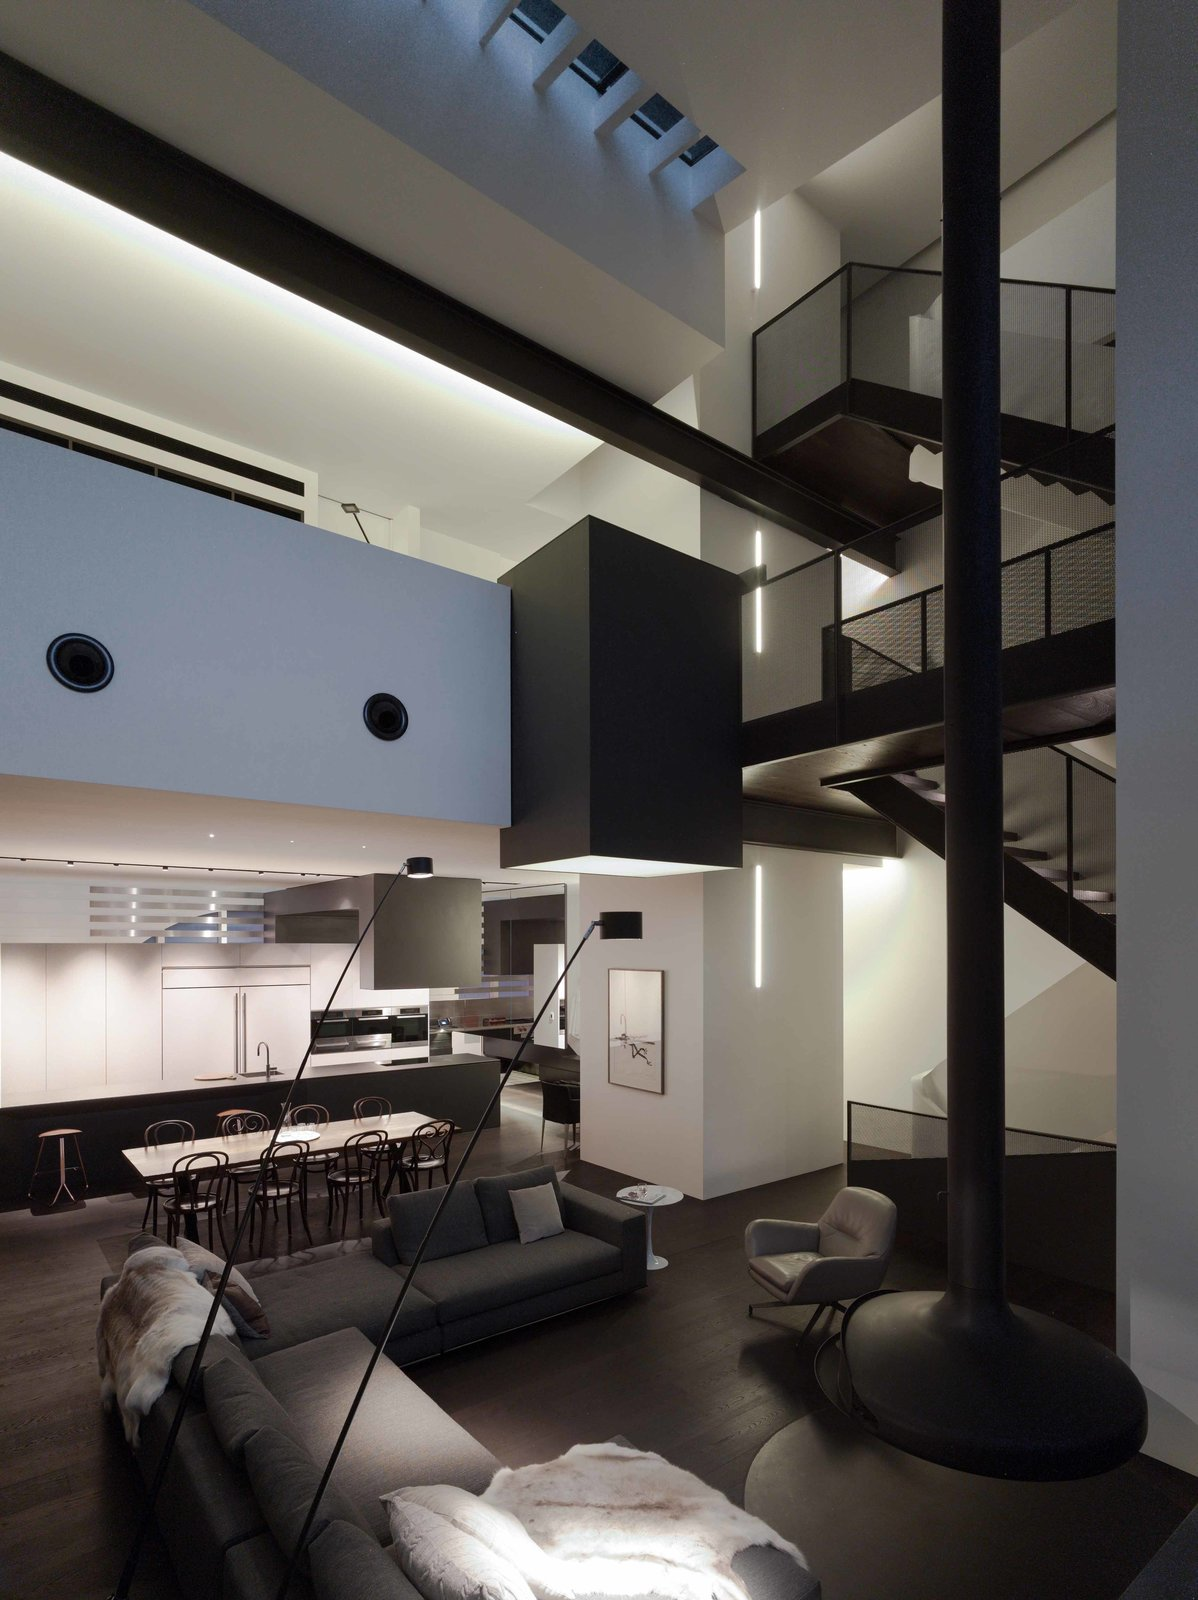 A pivoting Gyrofocus fireplace, staircase, and elevator shaft organize the social space. Lighting throughout the house is mostly ambient, supplemented by task-oriented lighting.  Photo 4 of 7 in An Airy Sydney Home Goes Vertical to Gain Space